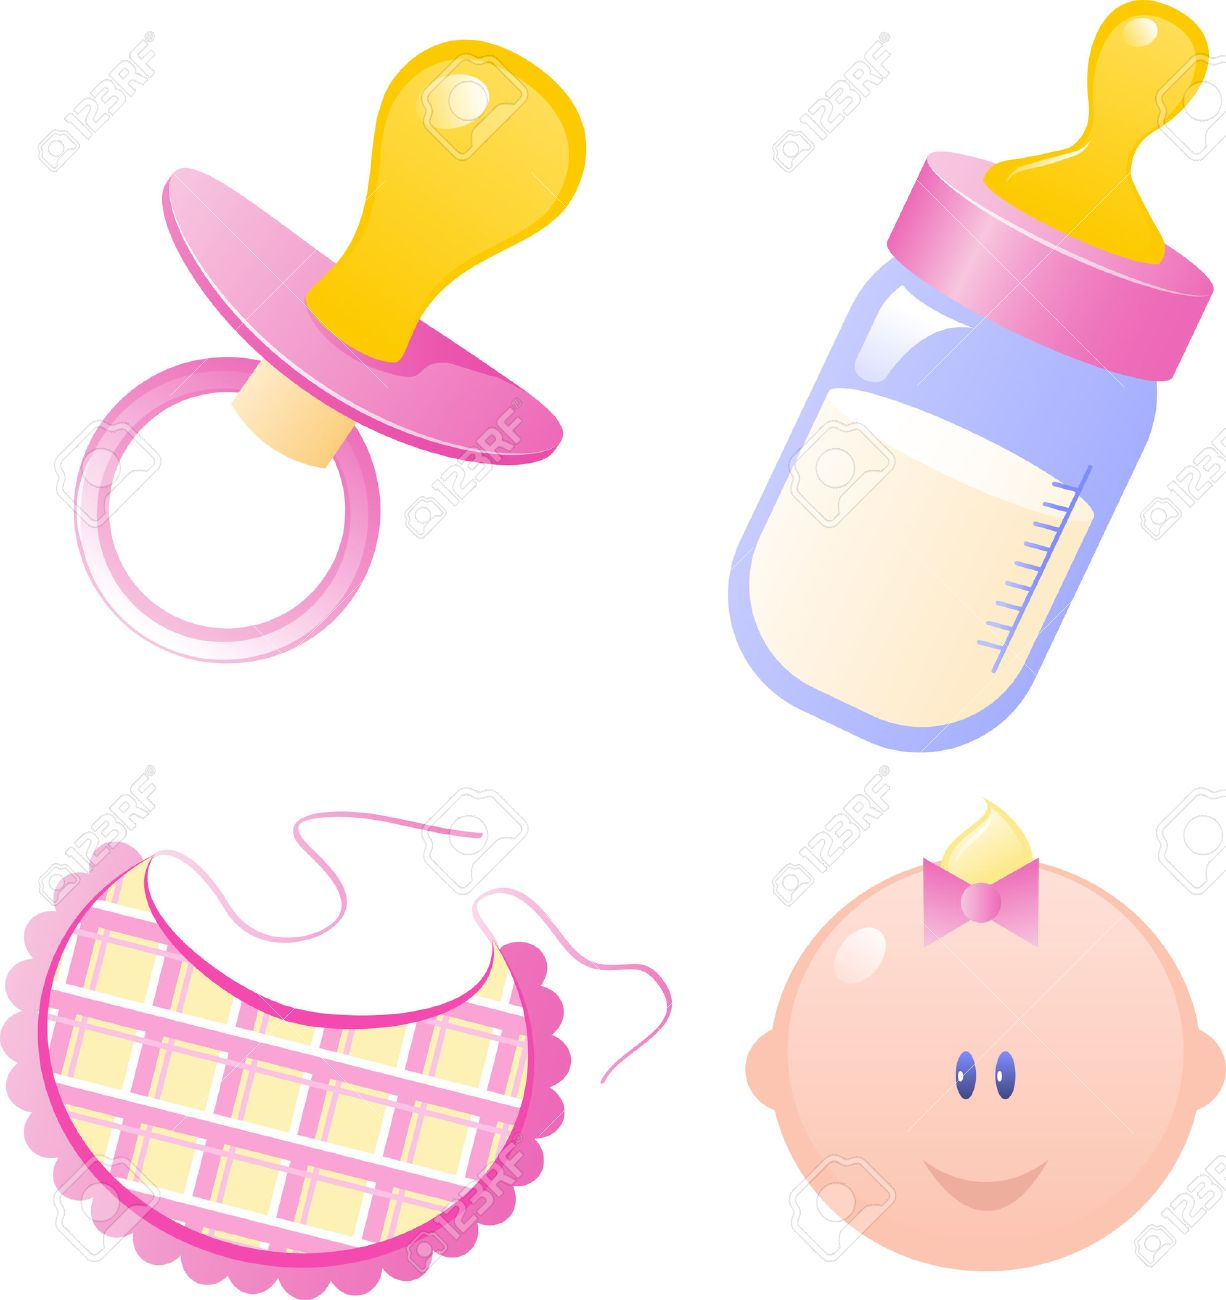 1226x1300 Pink Vector Baby's Dummy, Baby Bottle, Bib And Baby Girl. Isolated